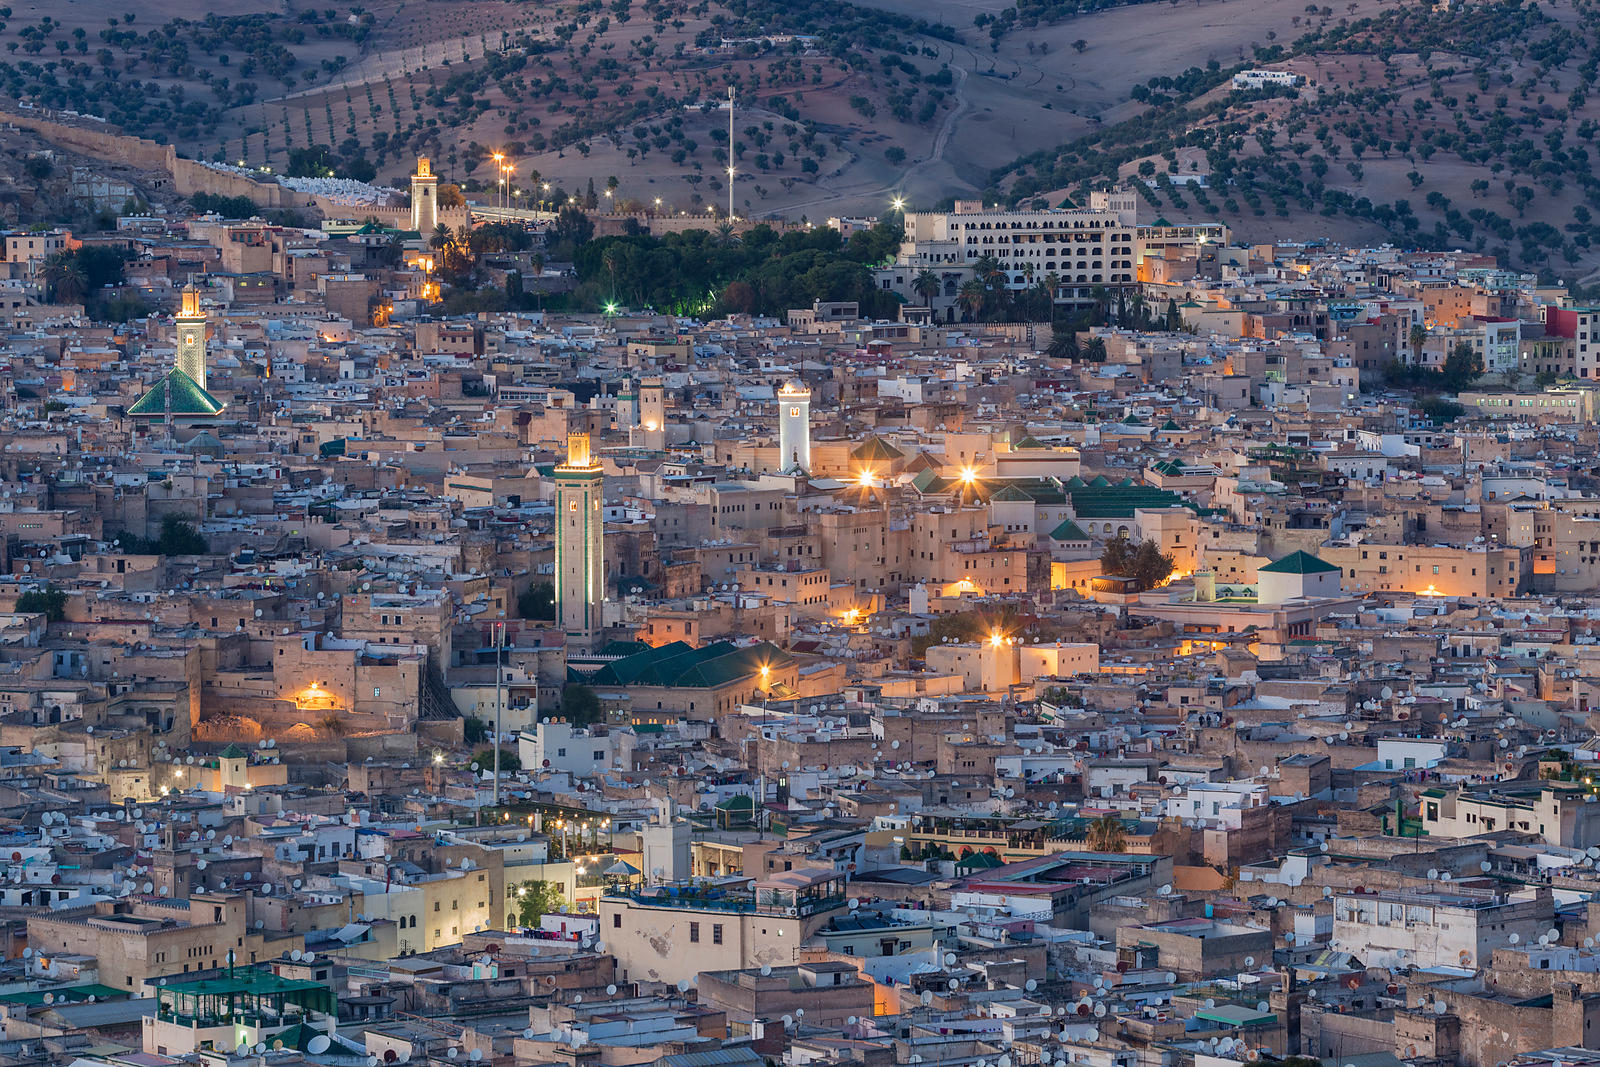 Elevated View of the Medina of Fes at Dusk